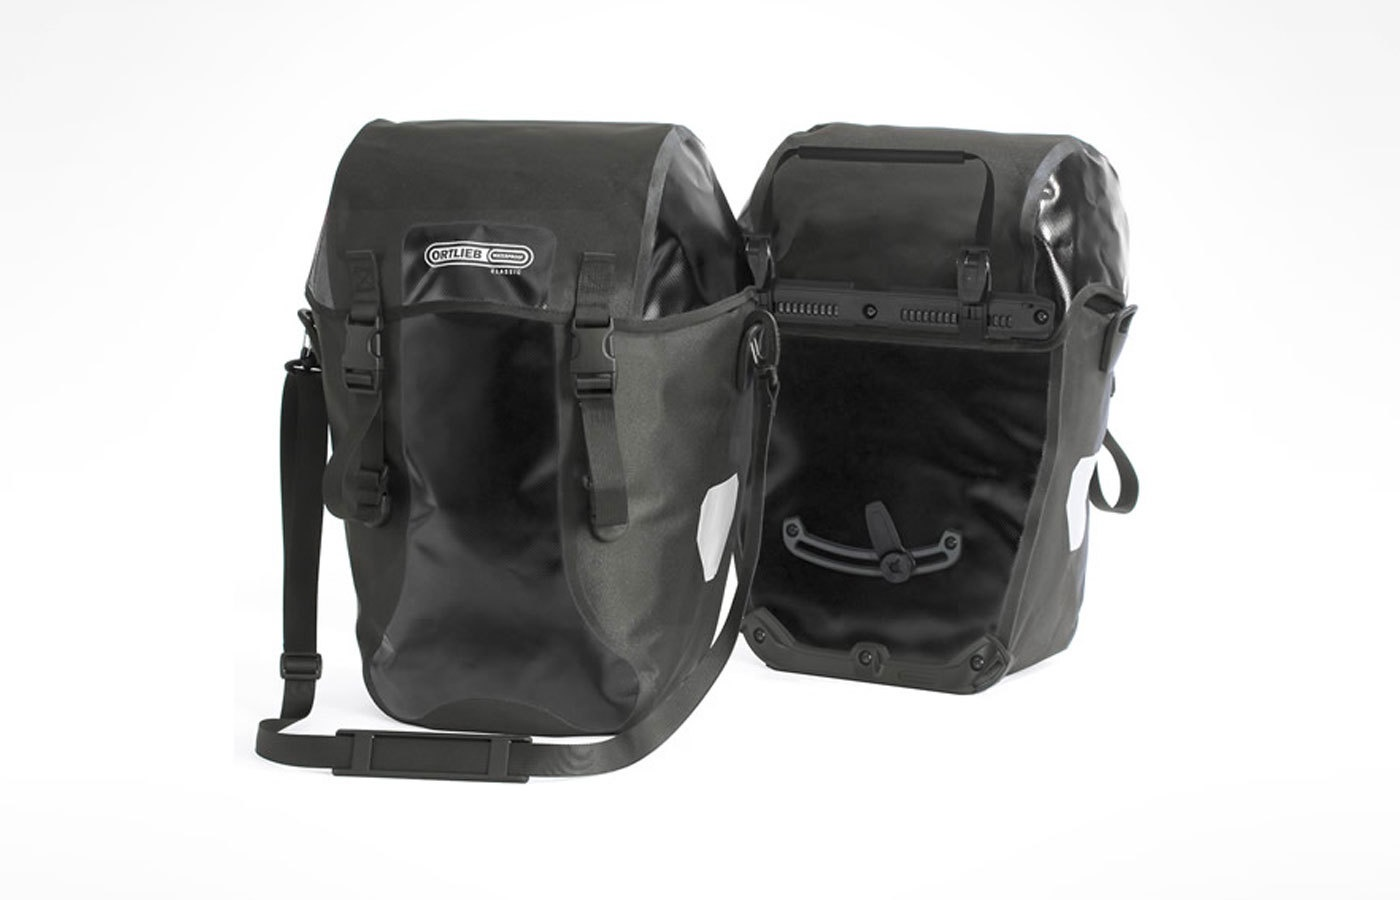 Ortlieb Bike-Packer Classic Panniers (rear)